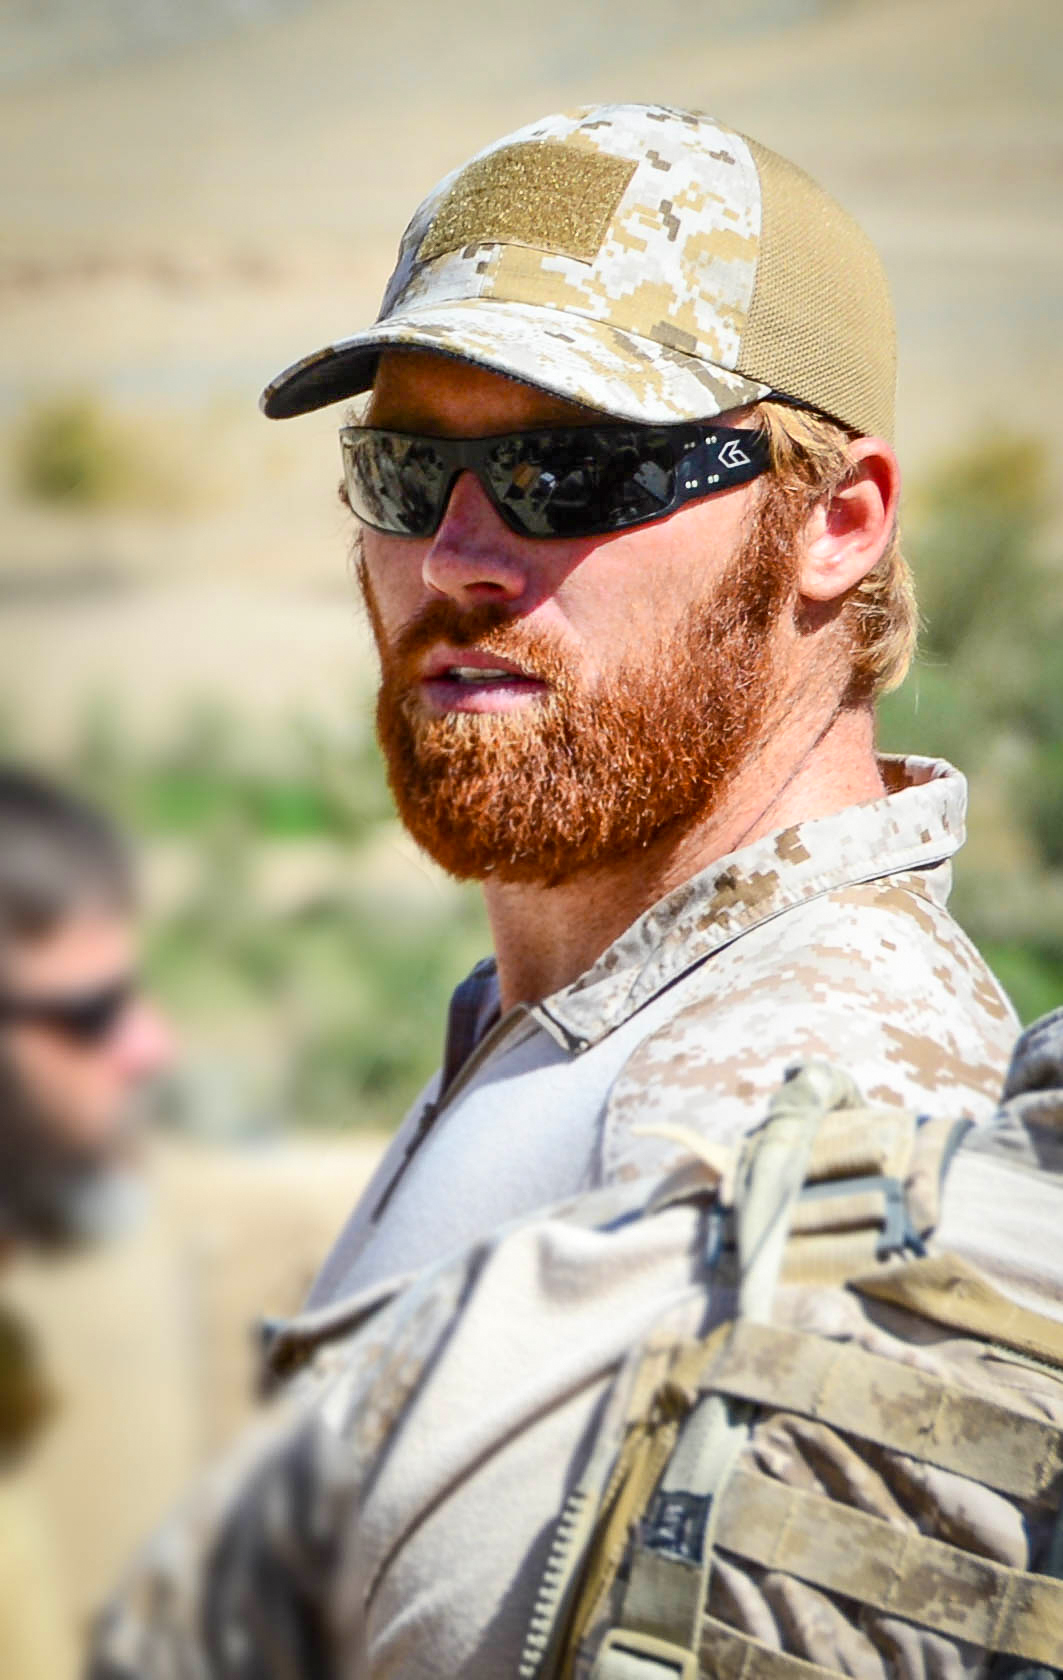 Special Warfare Operator 1st Class William Blake Marston, 31, of Concord, New Hampshire, died Jan. 10, 2015, in DeLand, Florida, during military parachute training. Marston was assigned to an East Coast-based SEAL Team and served in the Navy for six years.  Marston is survived by his girlfriend, Christine Clark; parents, Bill and Nancy; three siblings, Chris, Jeffrey and Emily; and many other friends and family.